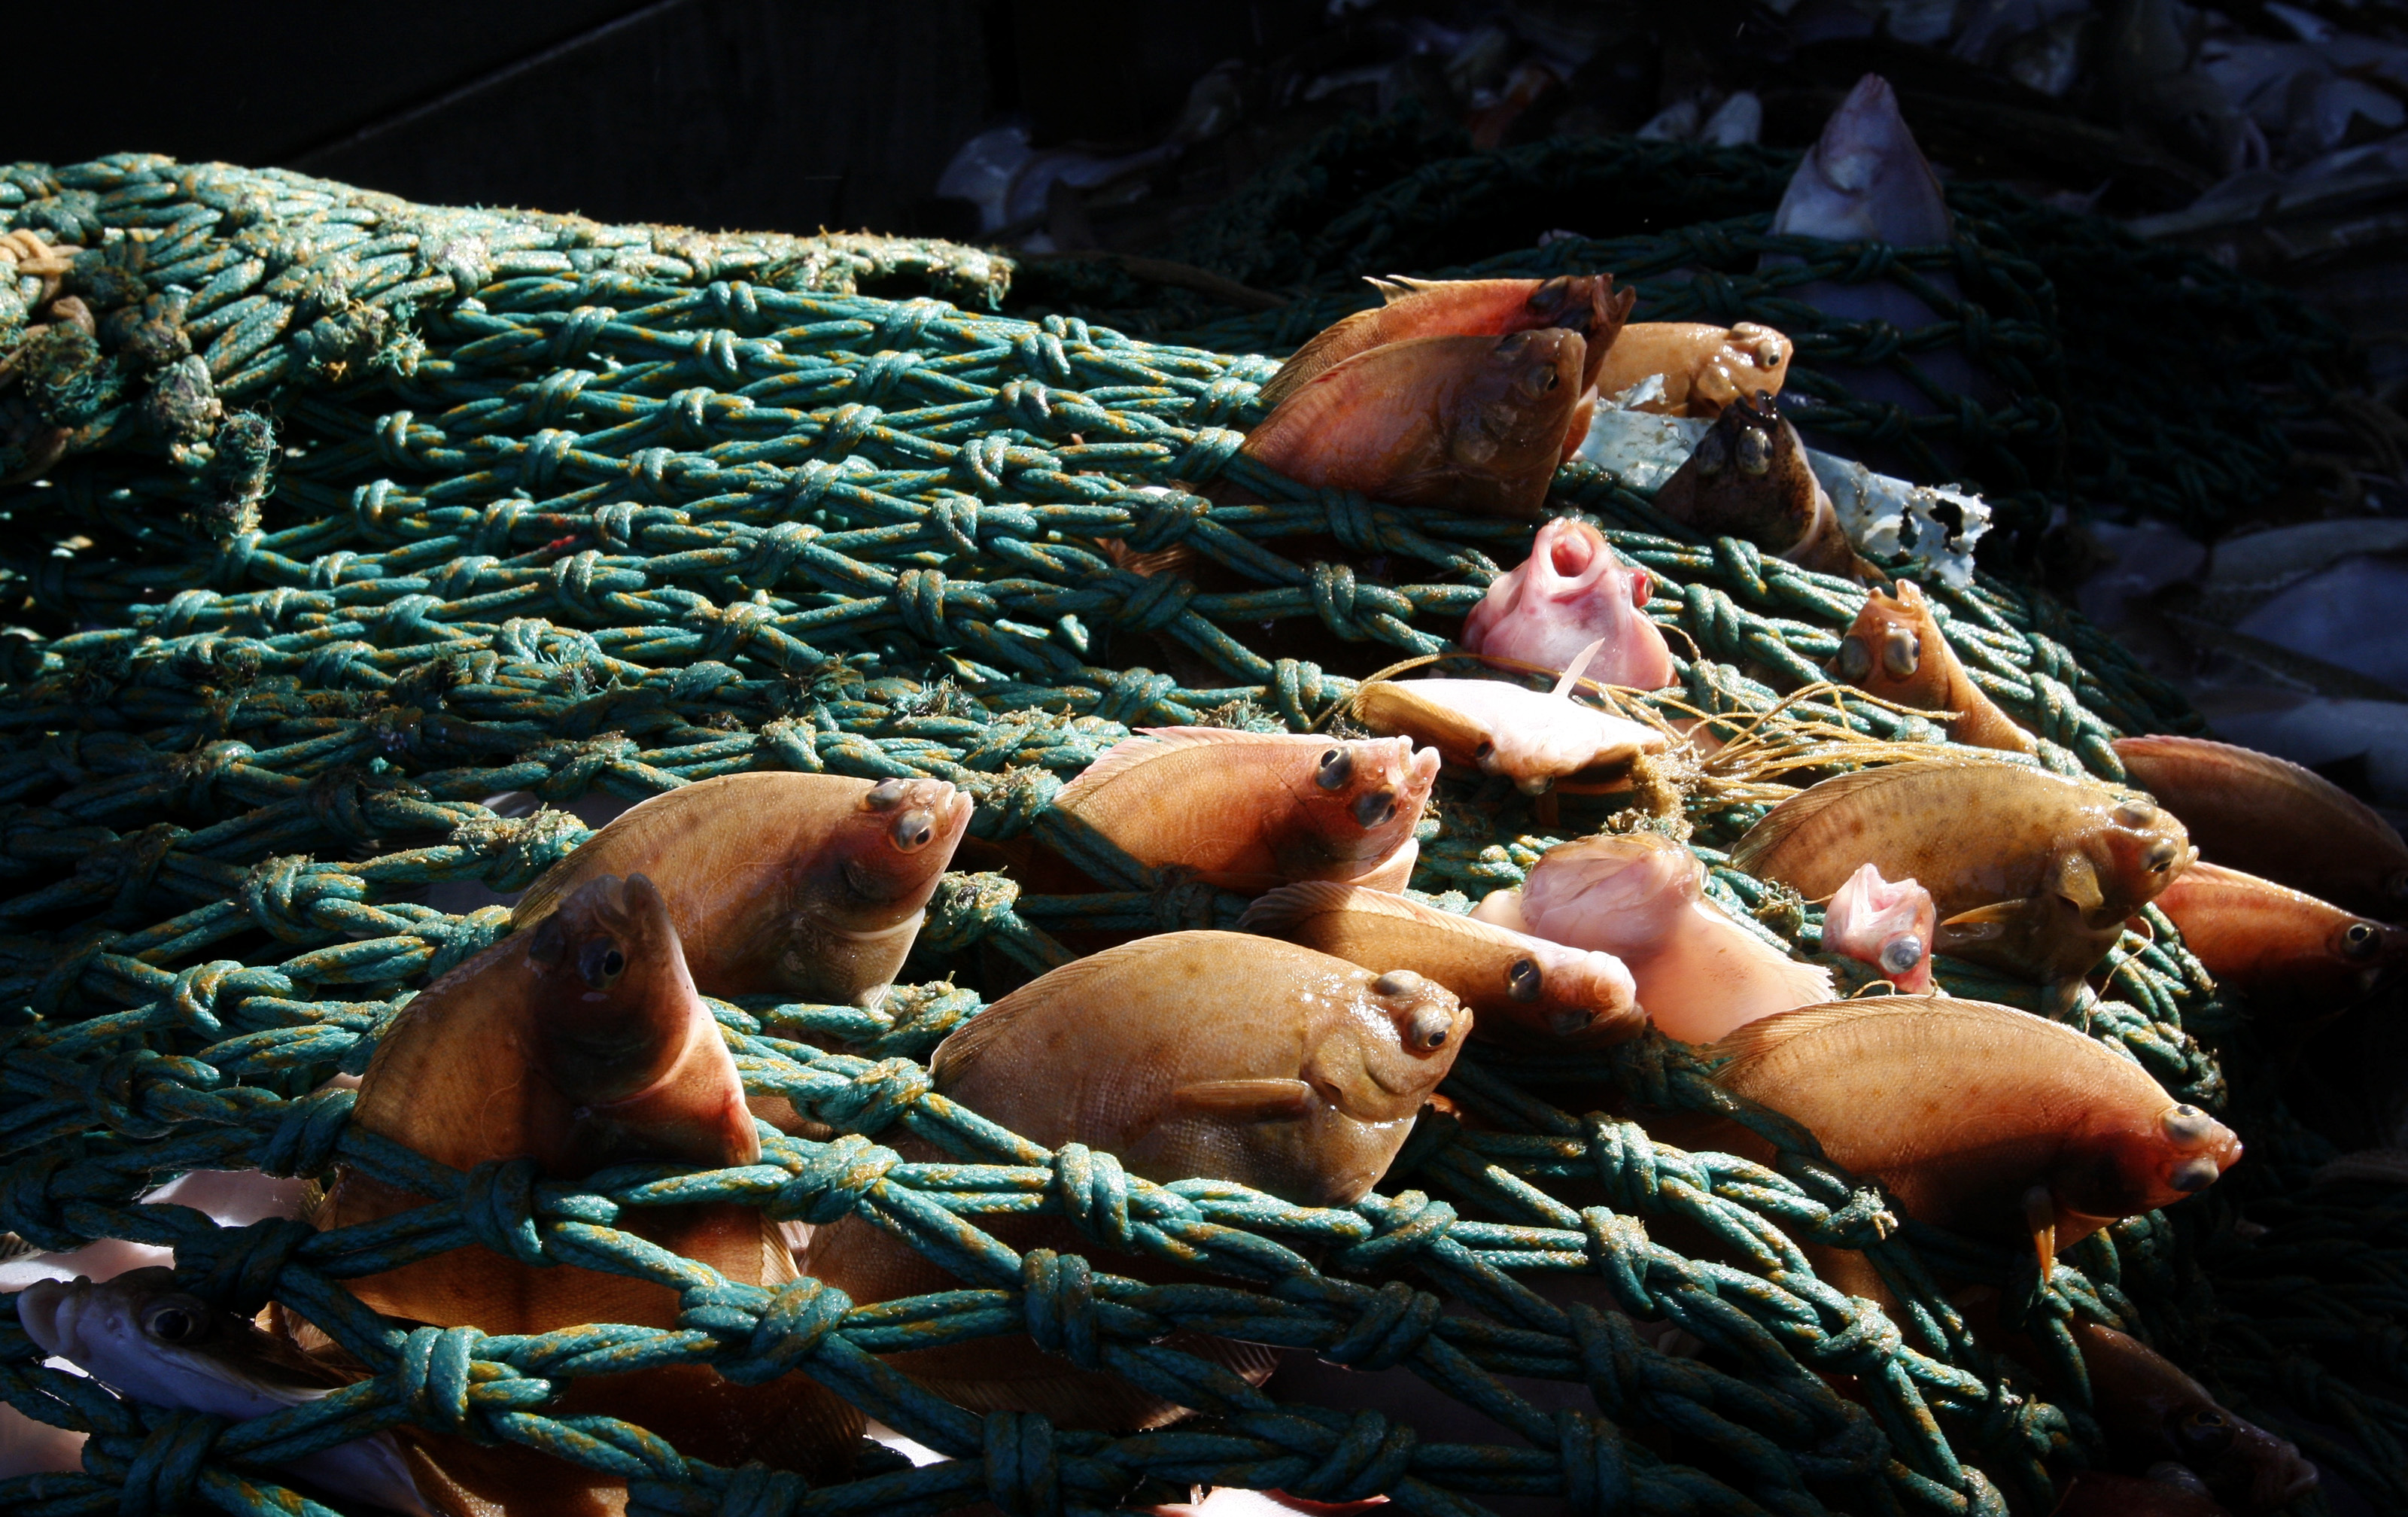 """View of little soles caught by the Boulogne sur Mer trawler """"Nicolas Jeremy"""" in the North Sea late September 29, 2008. European Union ministers opened a debate on Monday on how to overhaul Europe's fisheries policy from 2012, aiming to end persistent quota-busting and cut the trawling capacity of the EU fleet."""